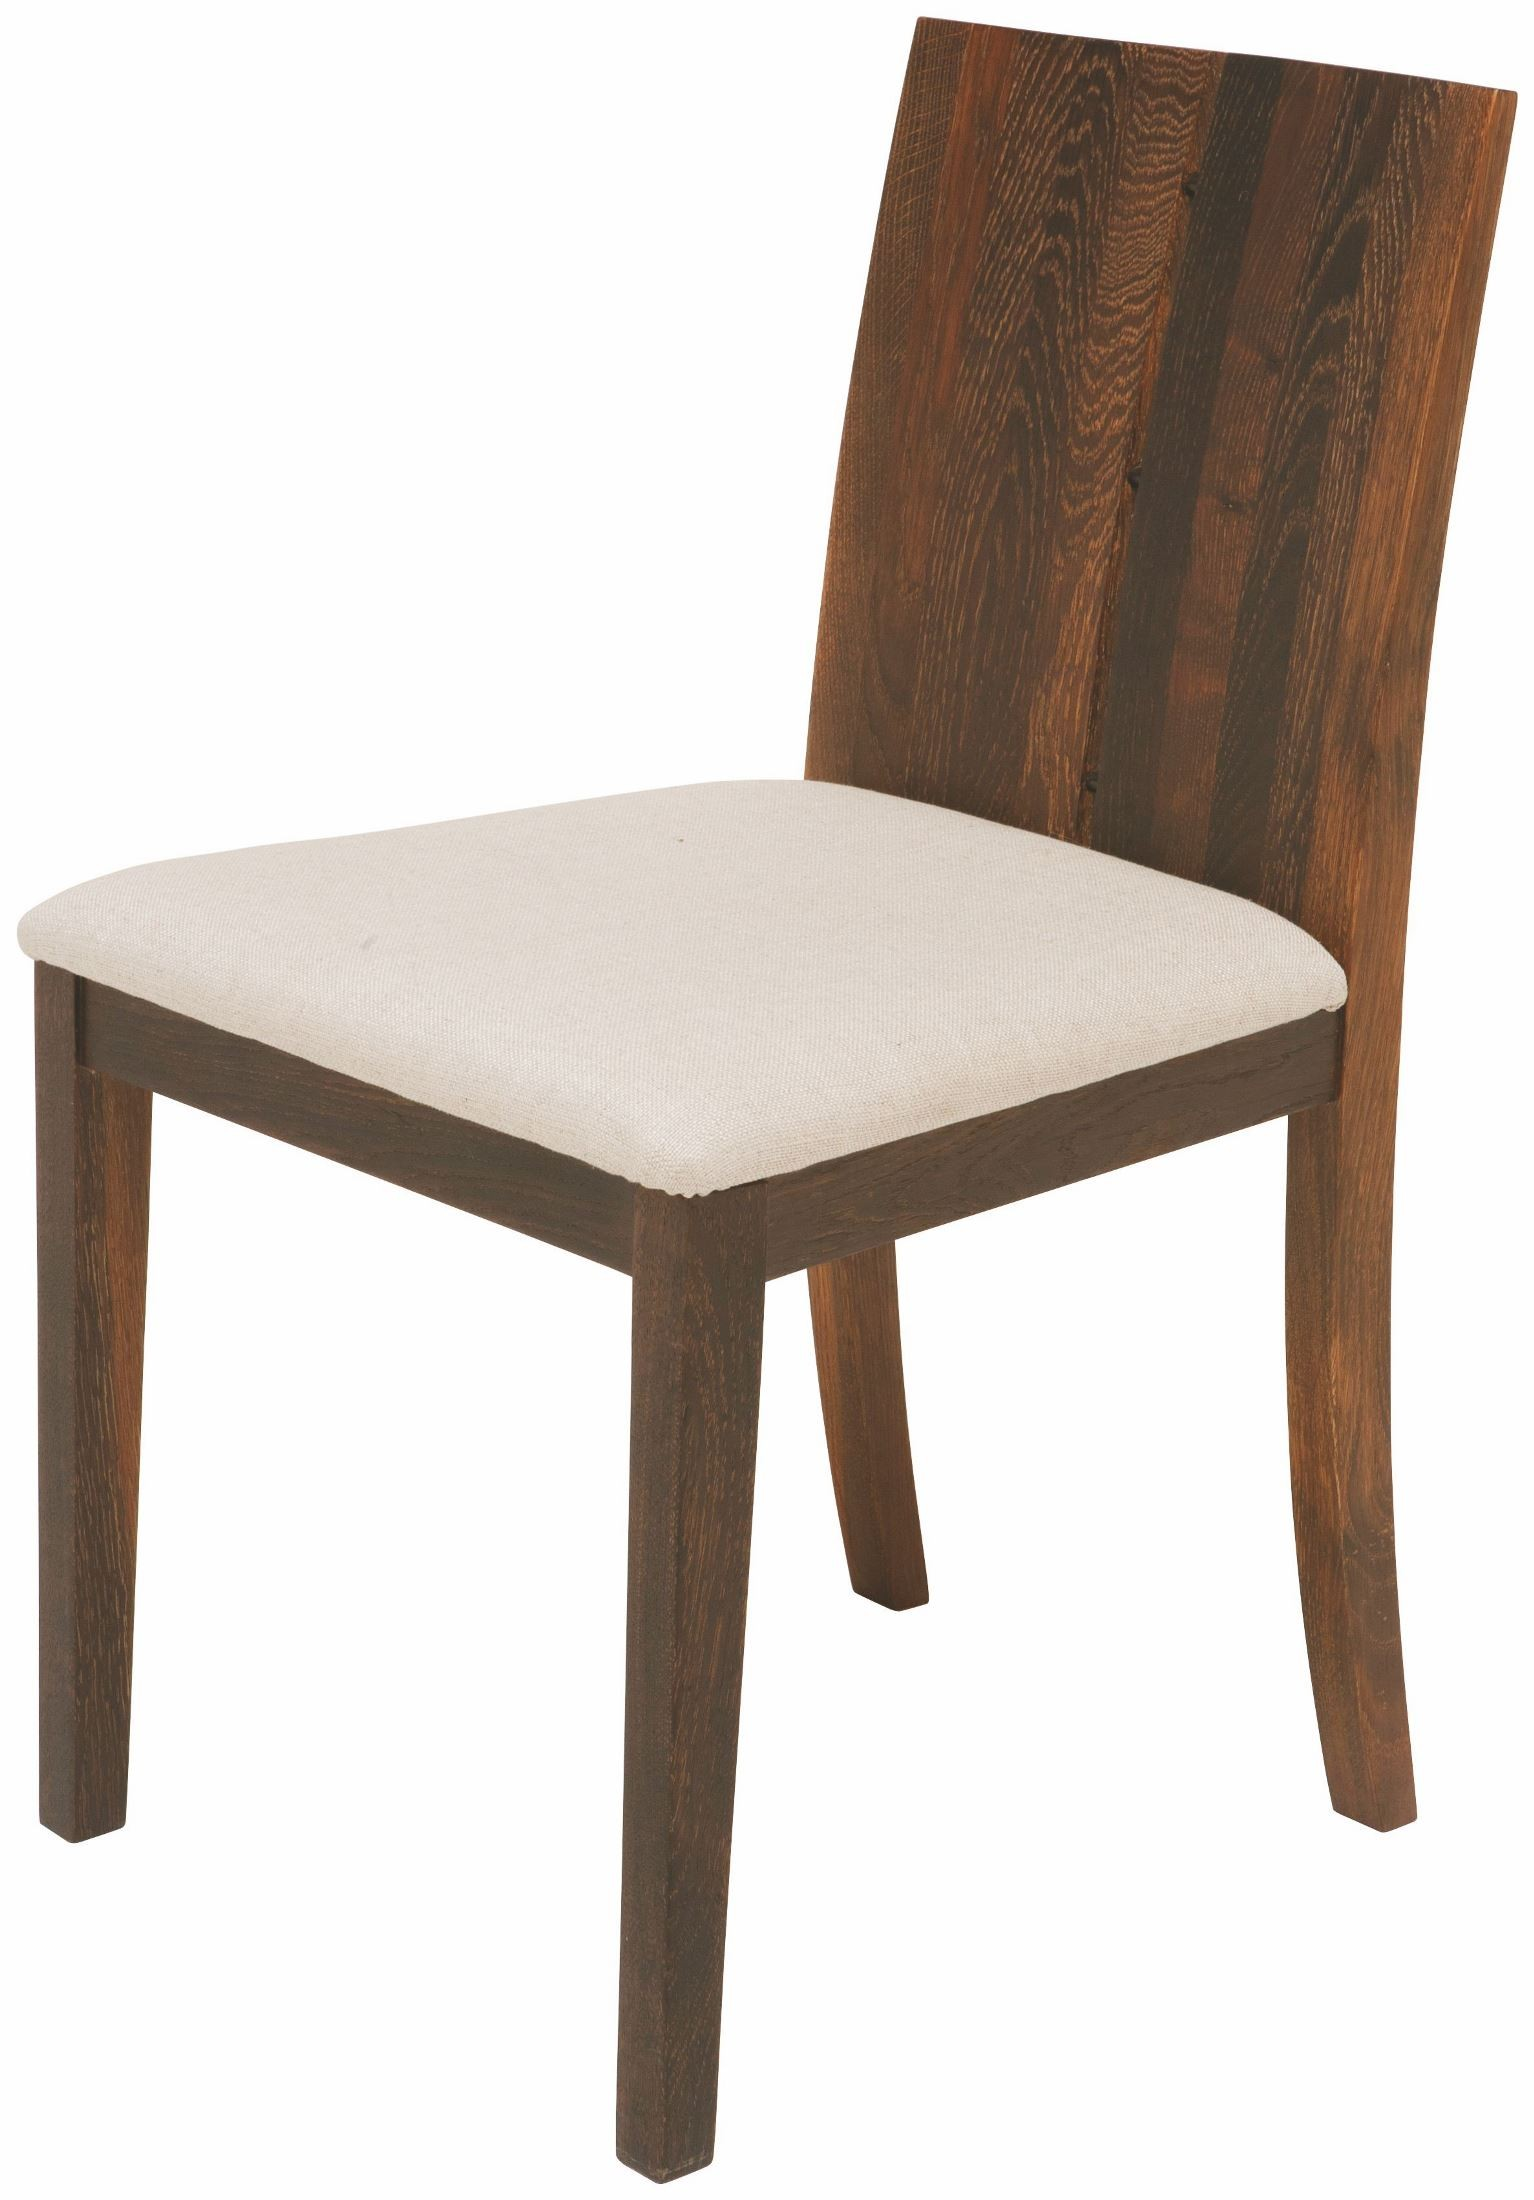 Eva Beige Fabric and Seared Wood Dining Chair from Nuevo  : hgsr284hr from colemanfurniture.com size 1534 x 2200 jpeg 298kB